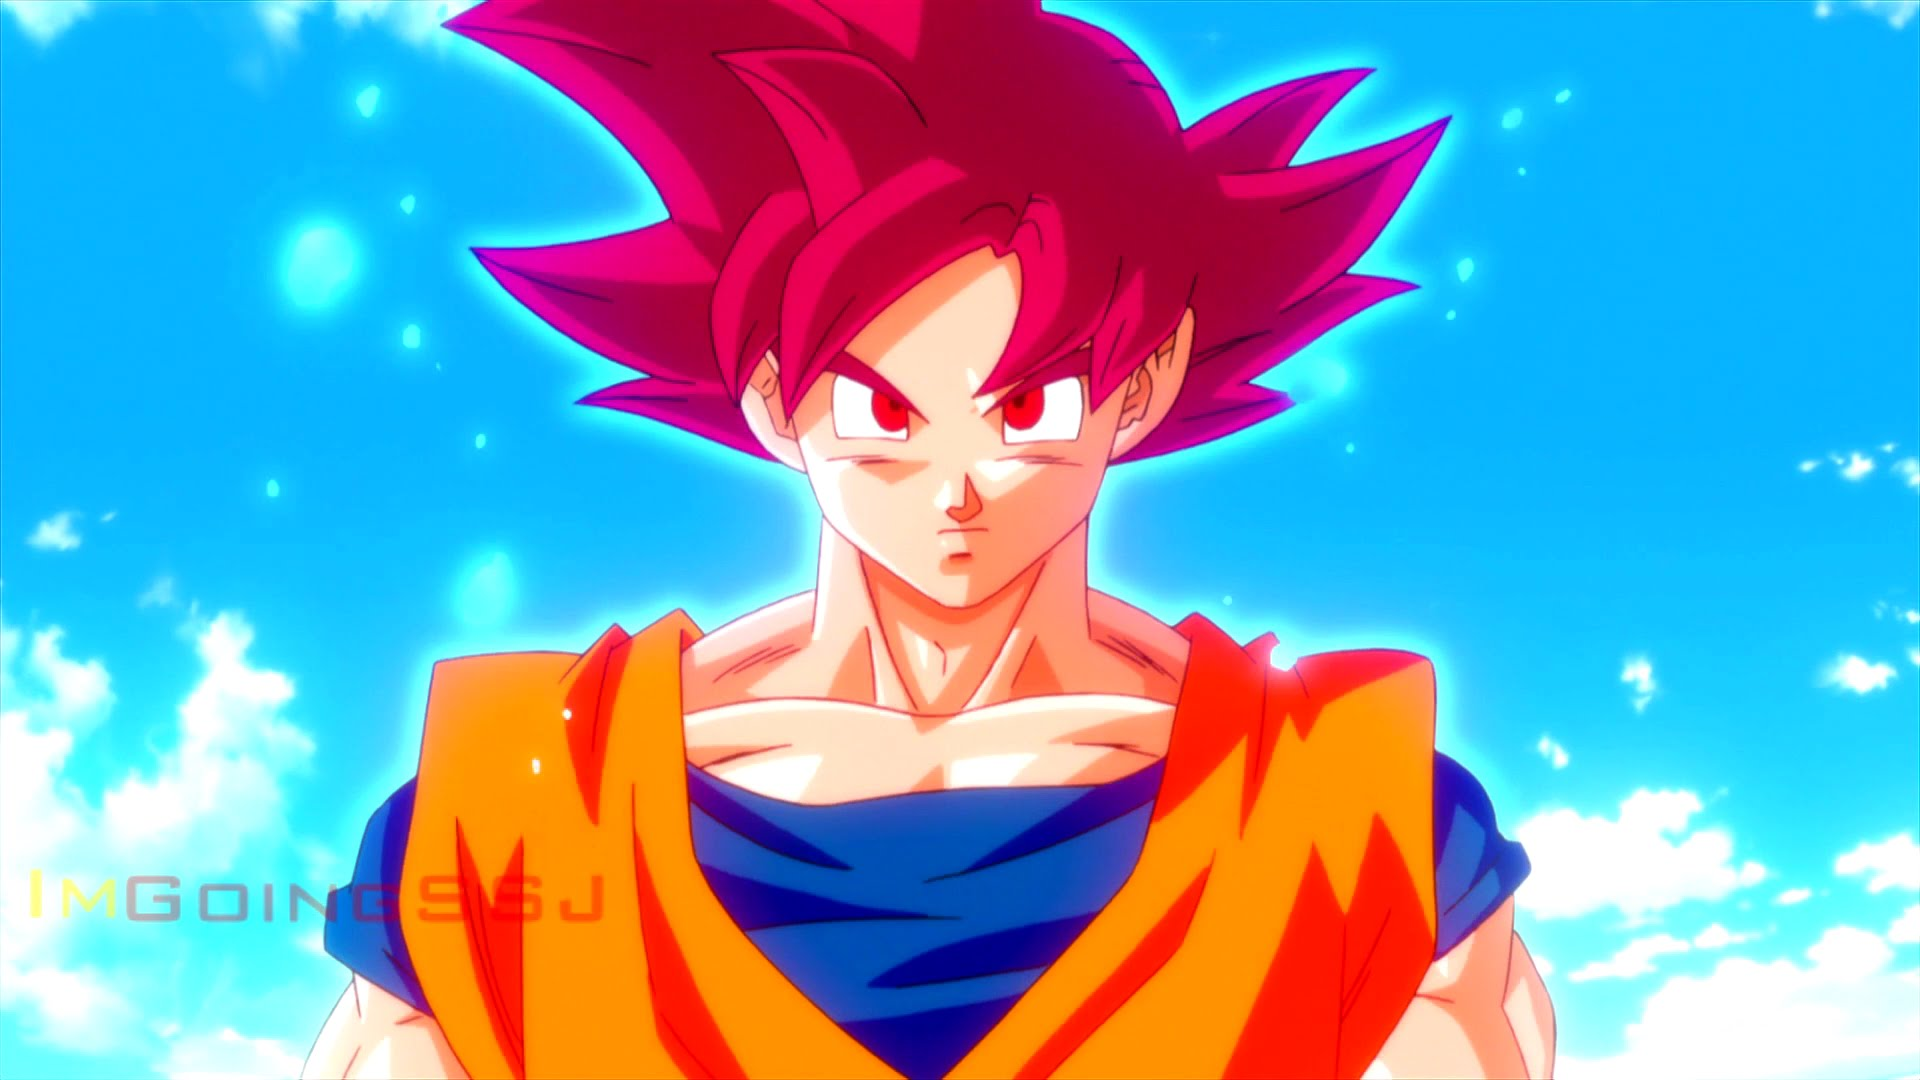 ººDragon Ball Superºº